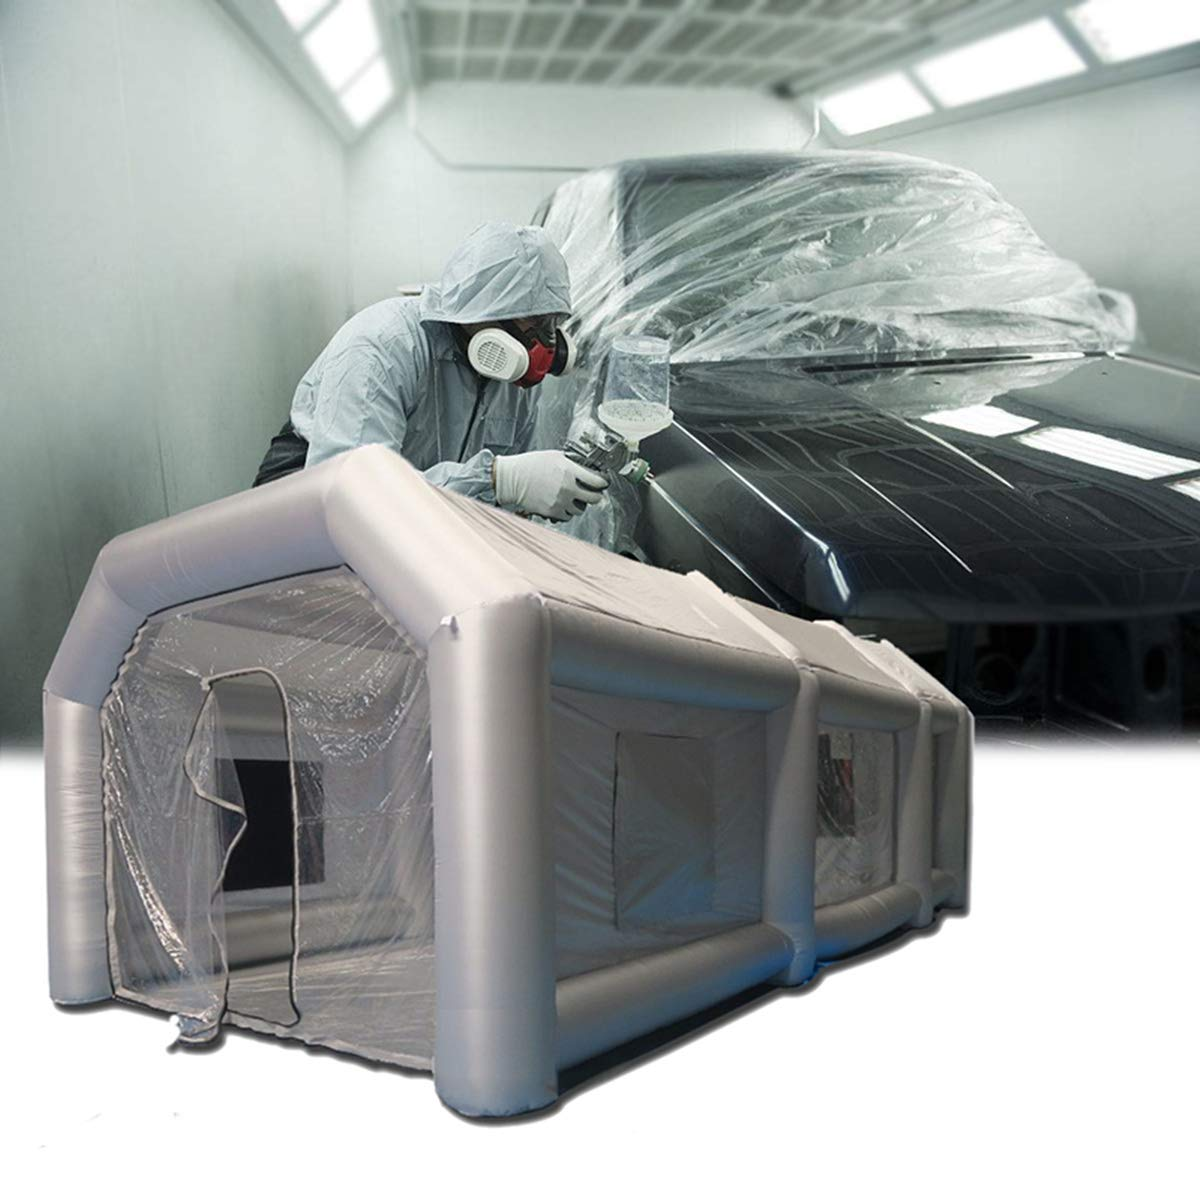 KingSo Inflatable Spray Booth Custom Tent Car Paint Booth Inflatable for Car Parking Tent Workstation, 26x13x10ft(No Electric Blowers)